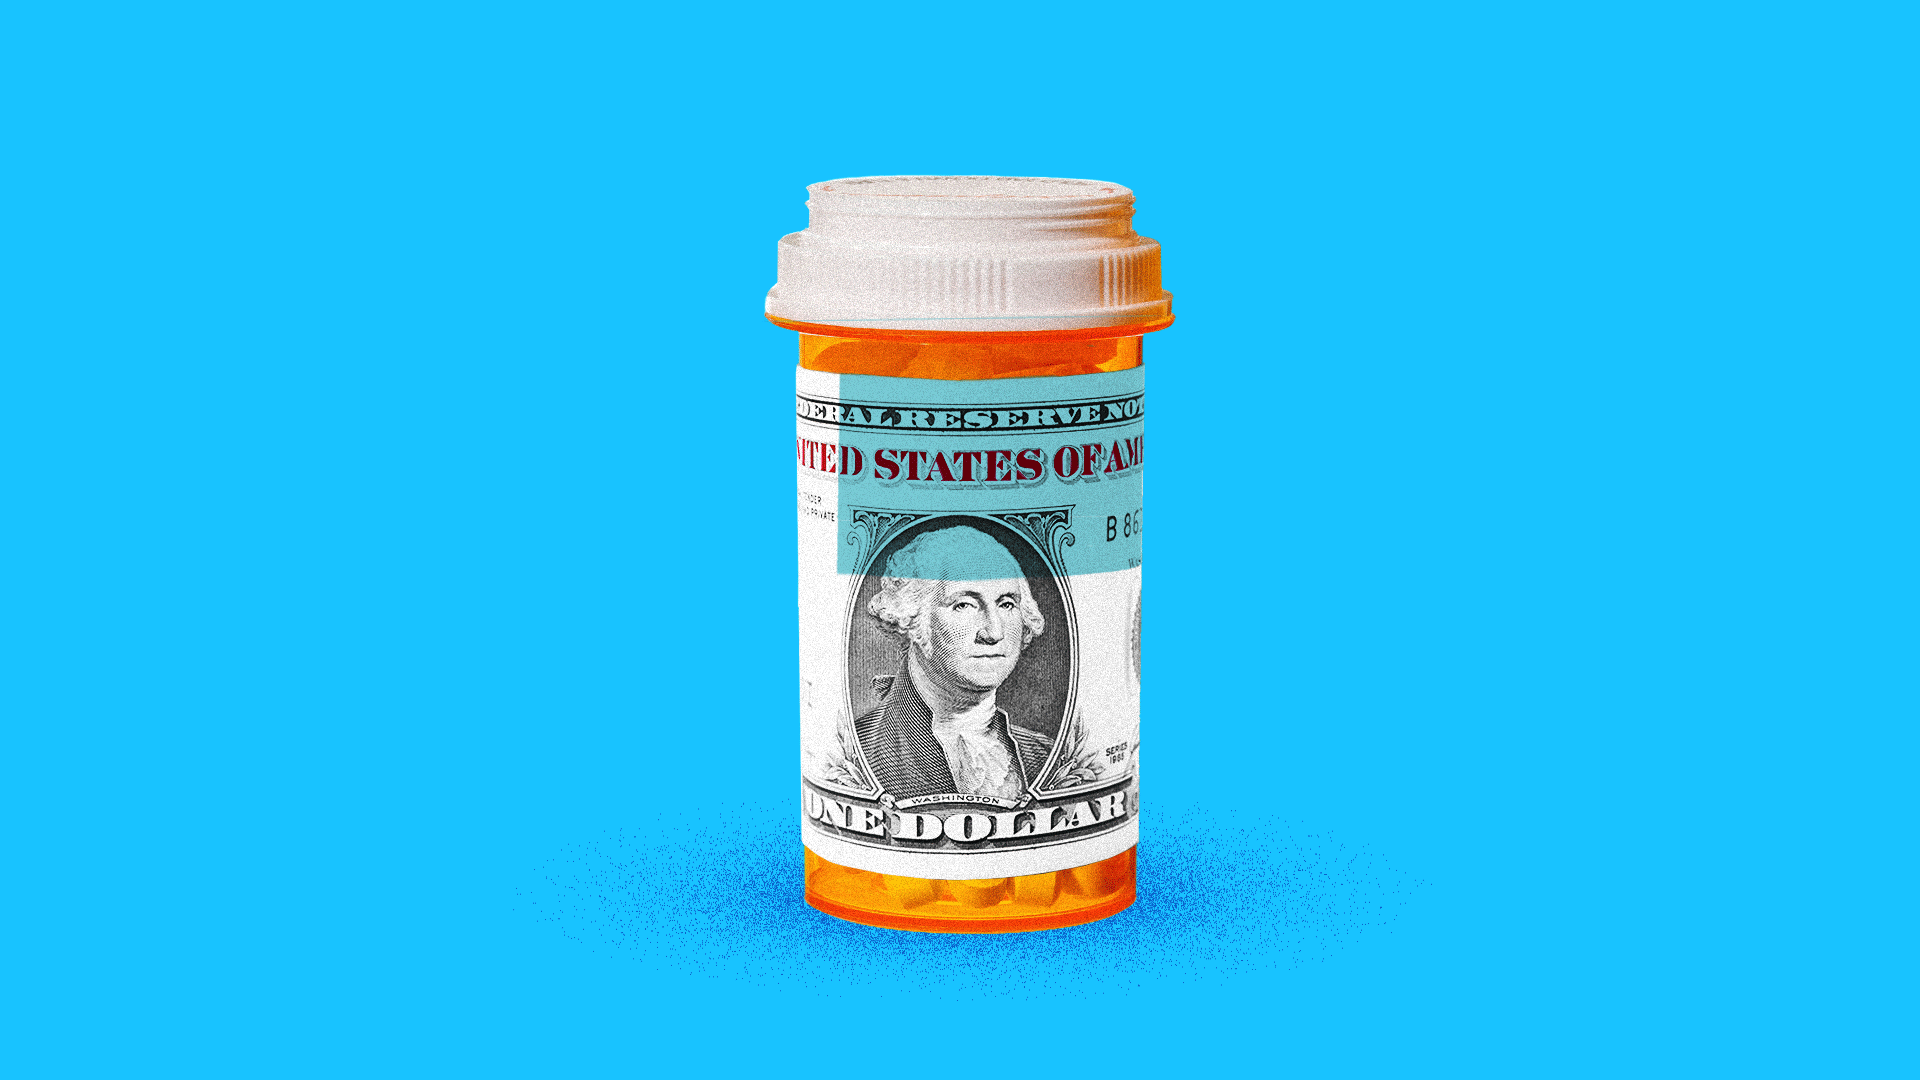 Illustration of a prescription pill bottle with a black and white dollar bill as the label.